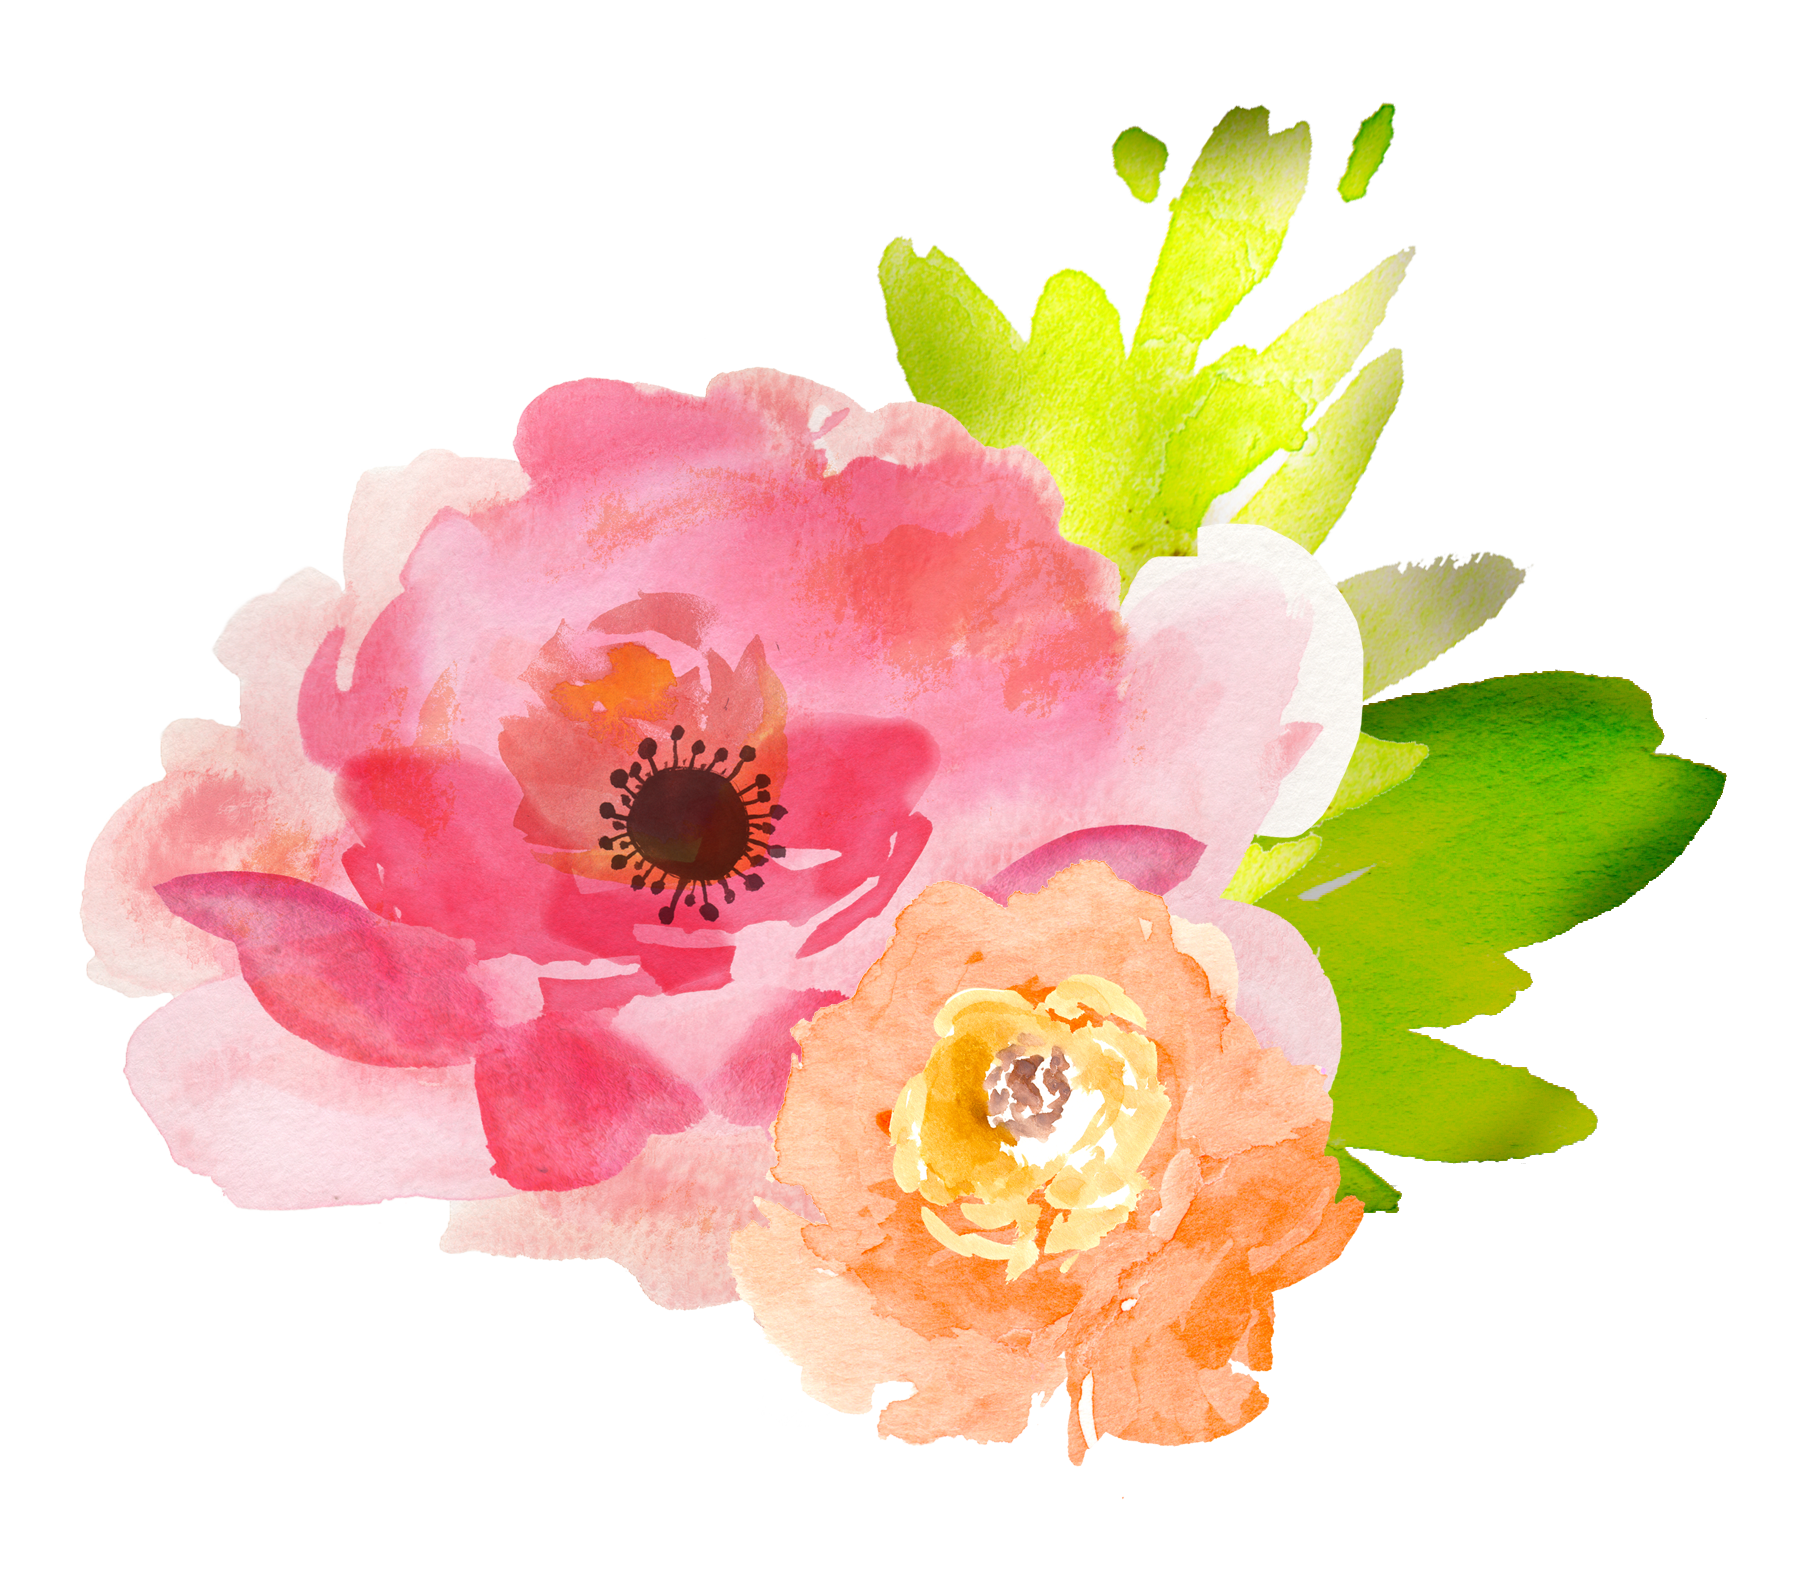 Watercolor clipart png. Watercolour flowers painting floral